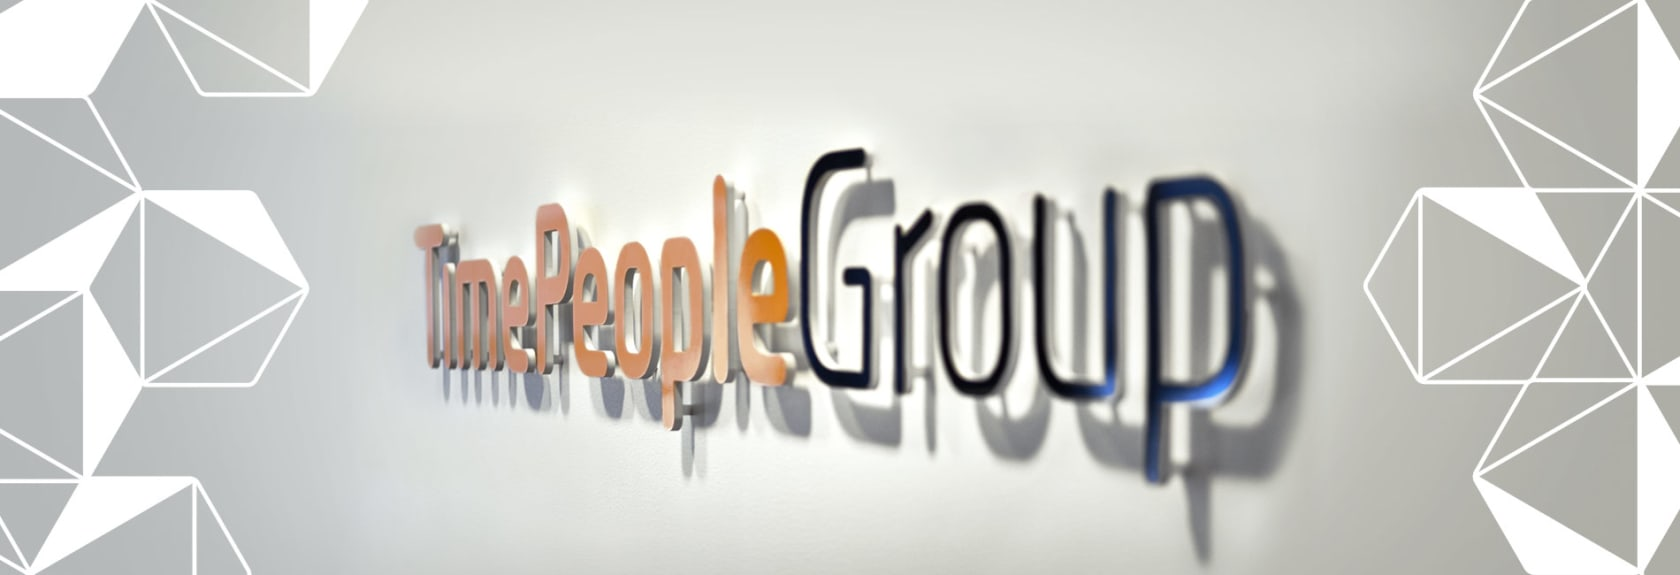 Time People Group